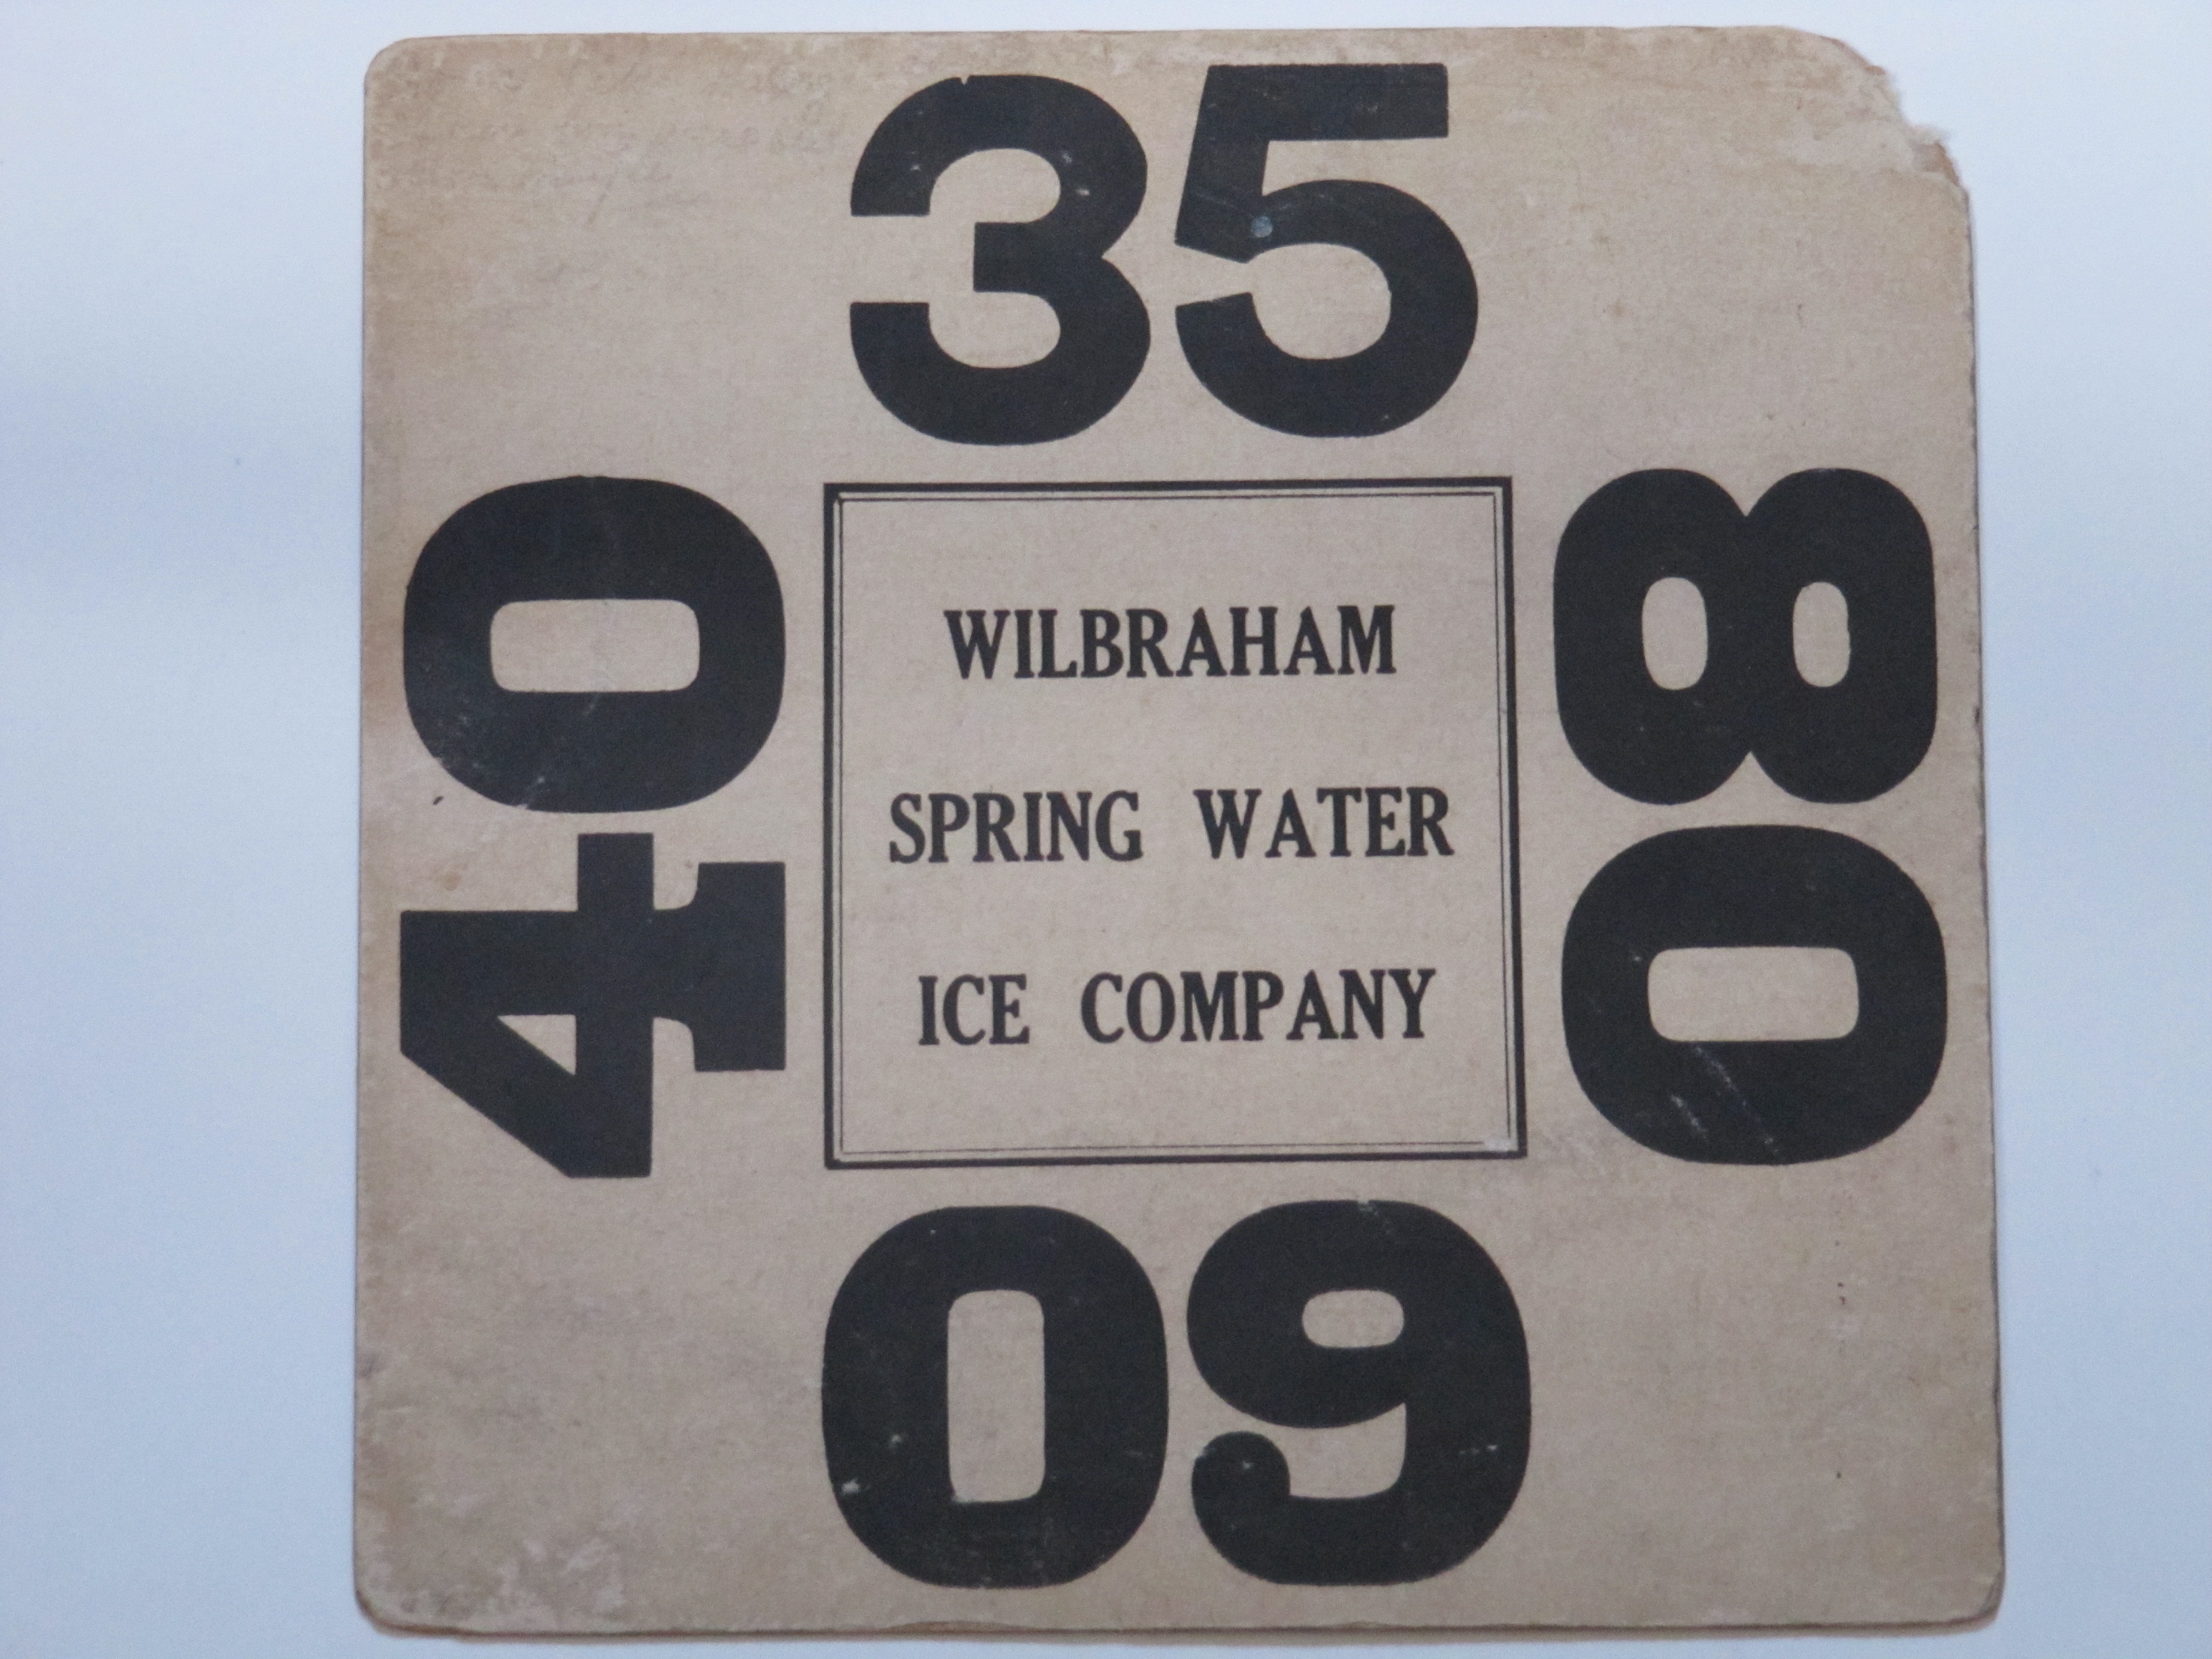 Wilbraham Spring Water Ice CO.